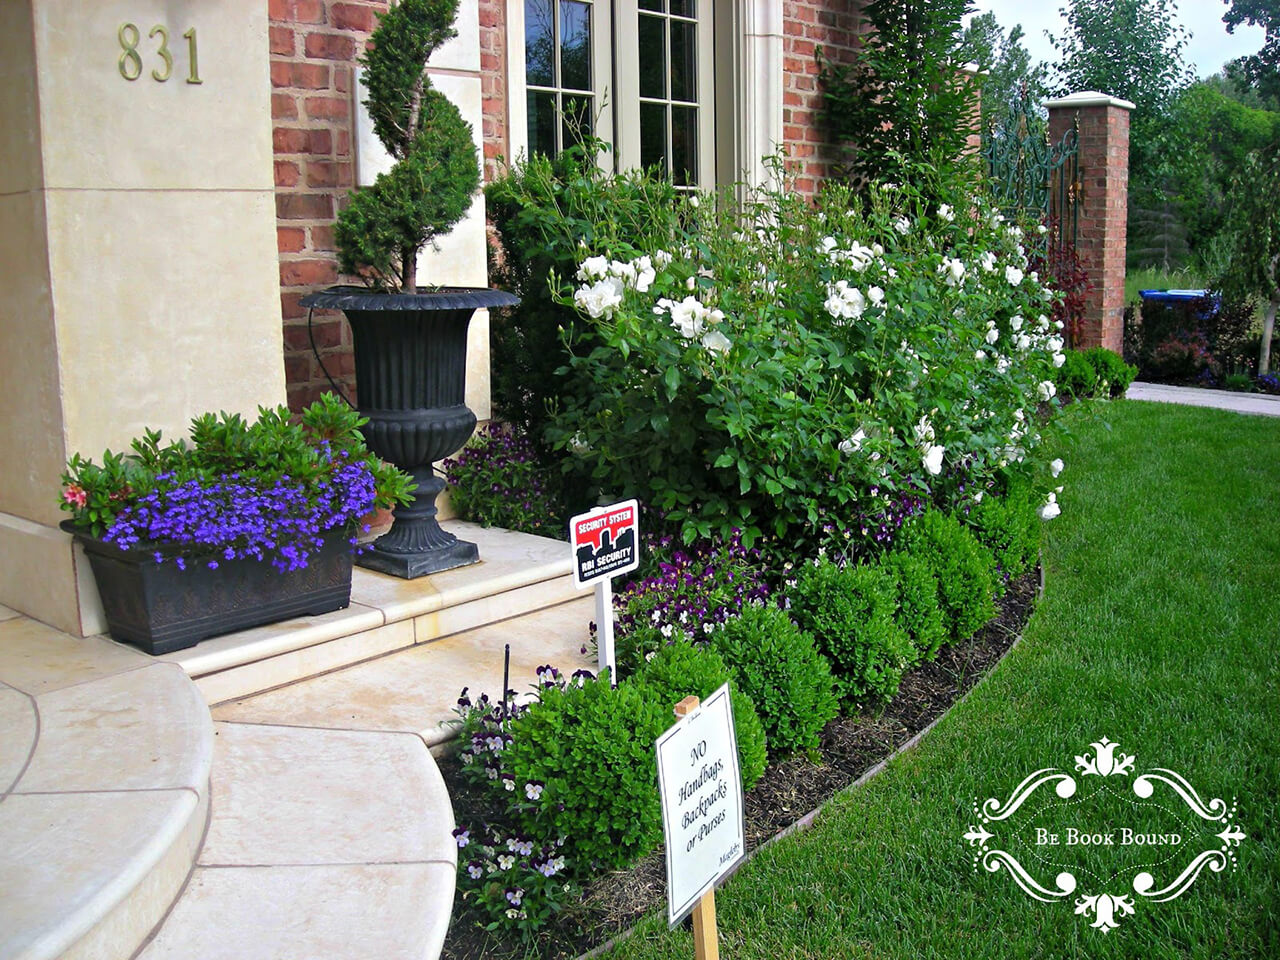 50 Best Front Yard Landscaping Ideas and Garden Designs ... on Patio And Grass Garden Ideas id=26039